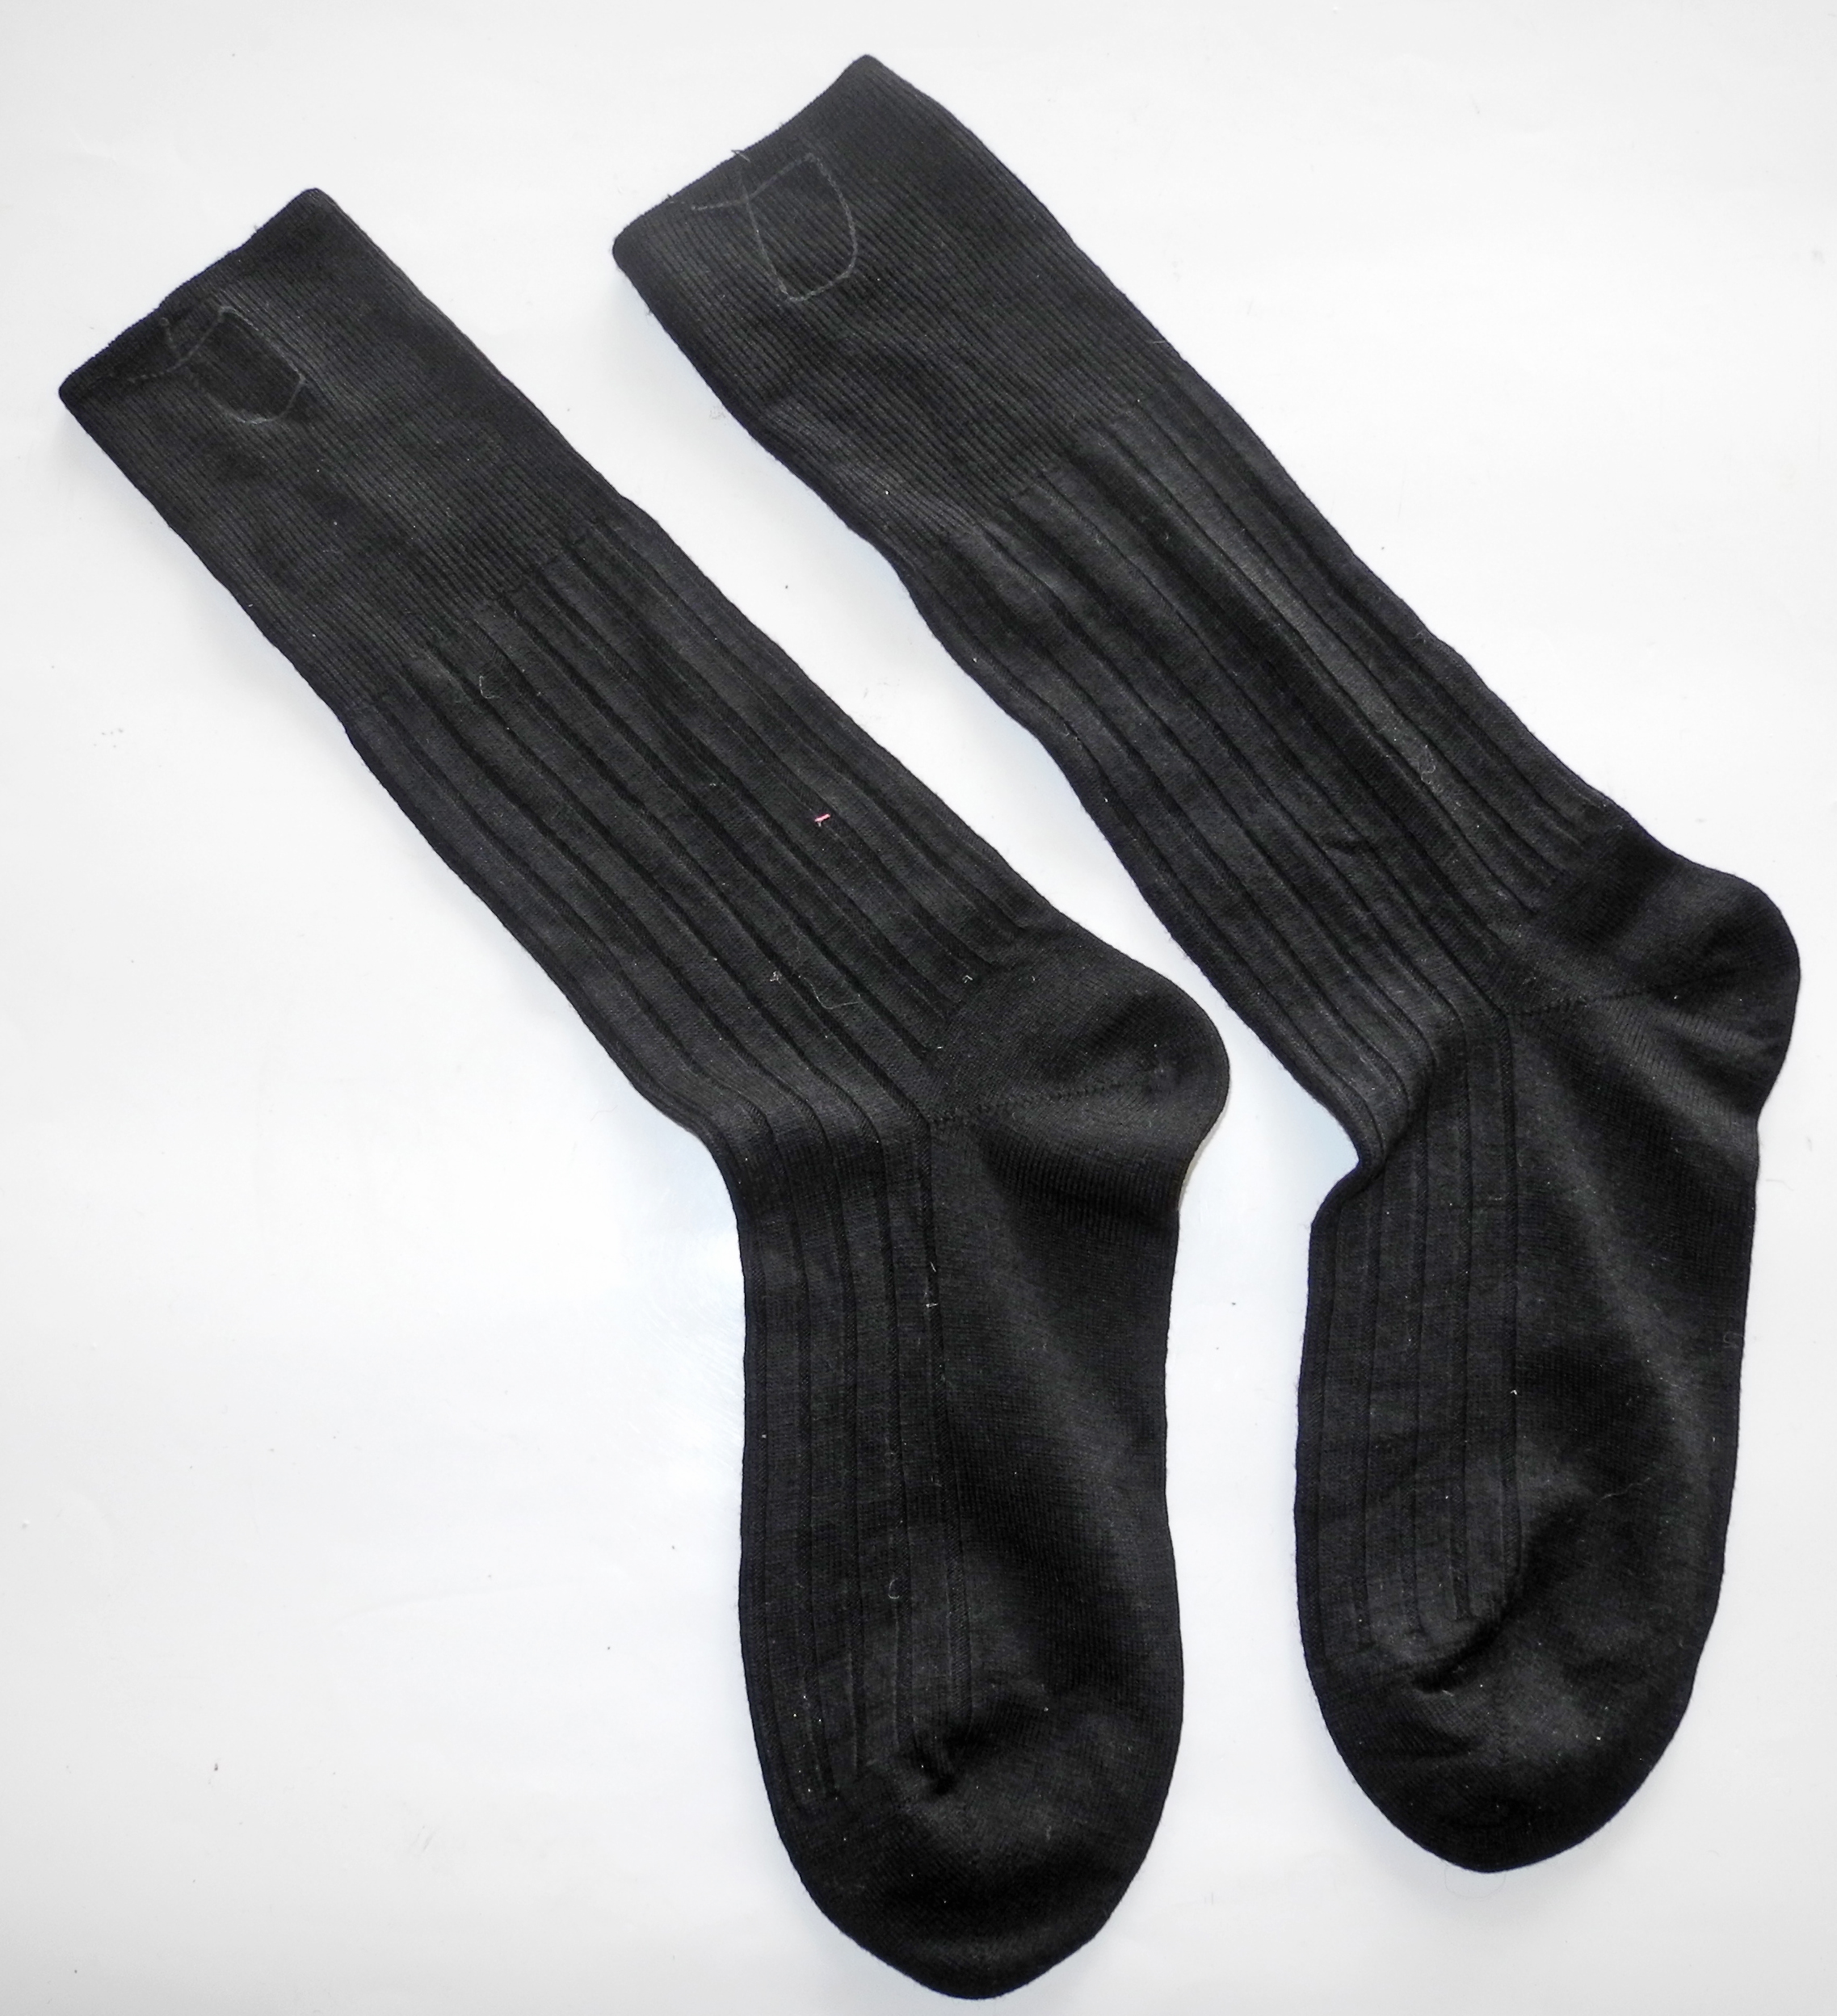 RAF uniform socks dated 1945